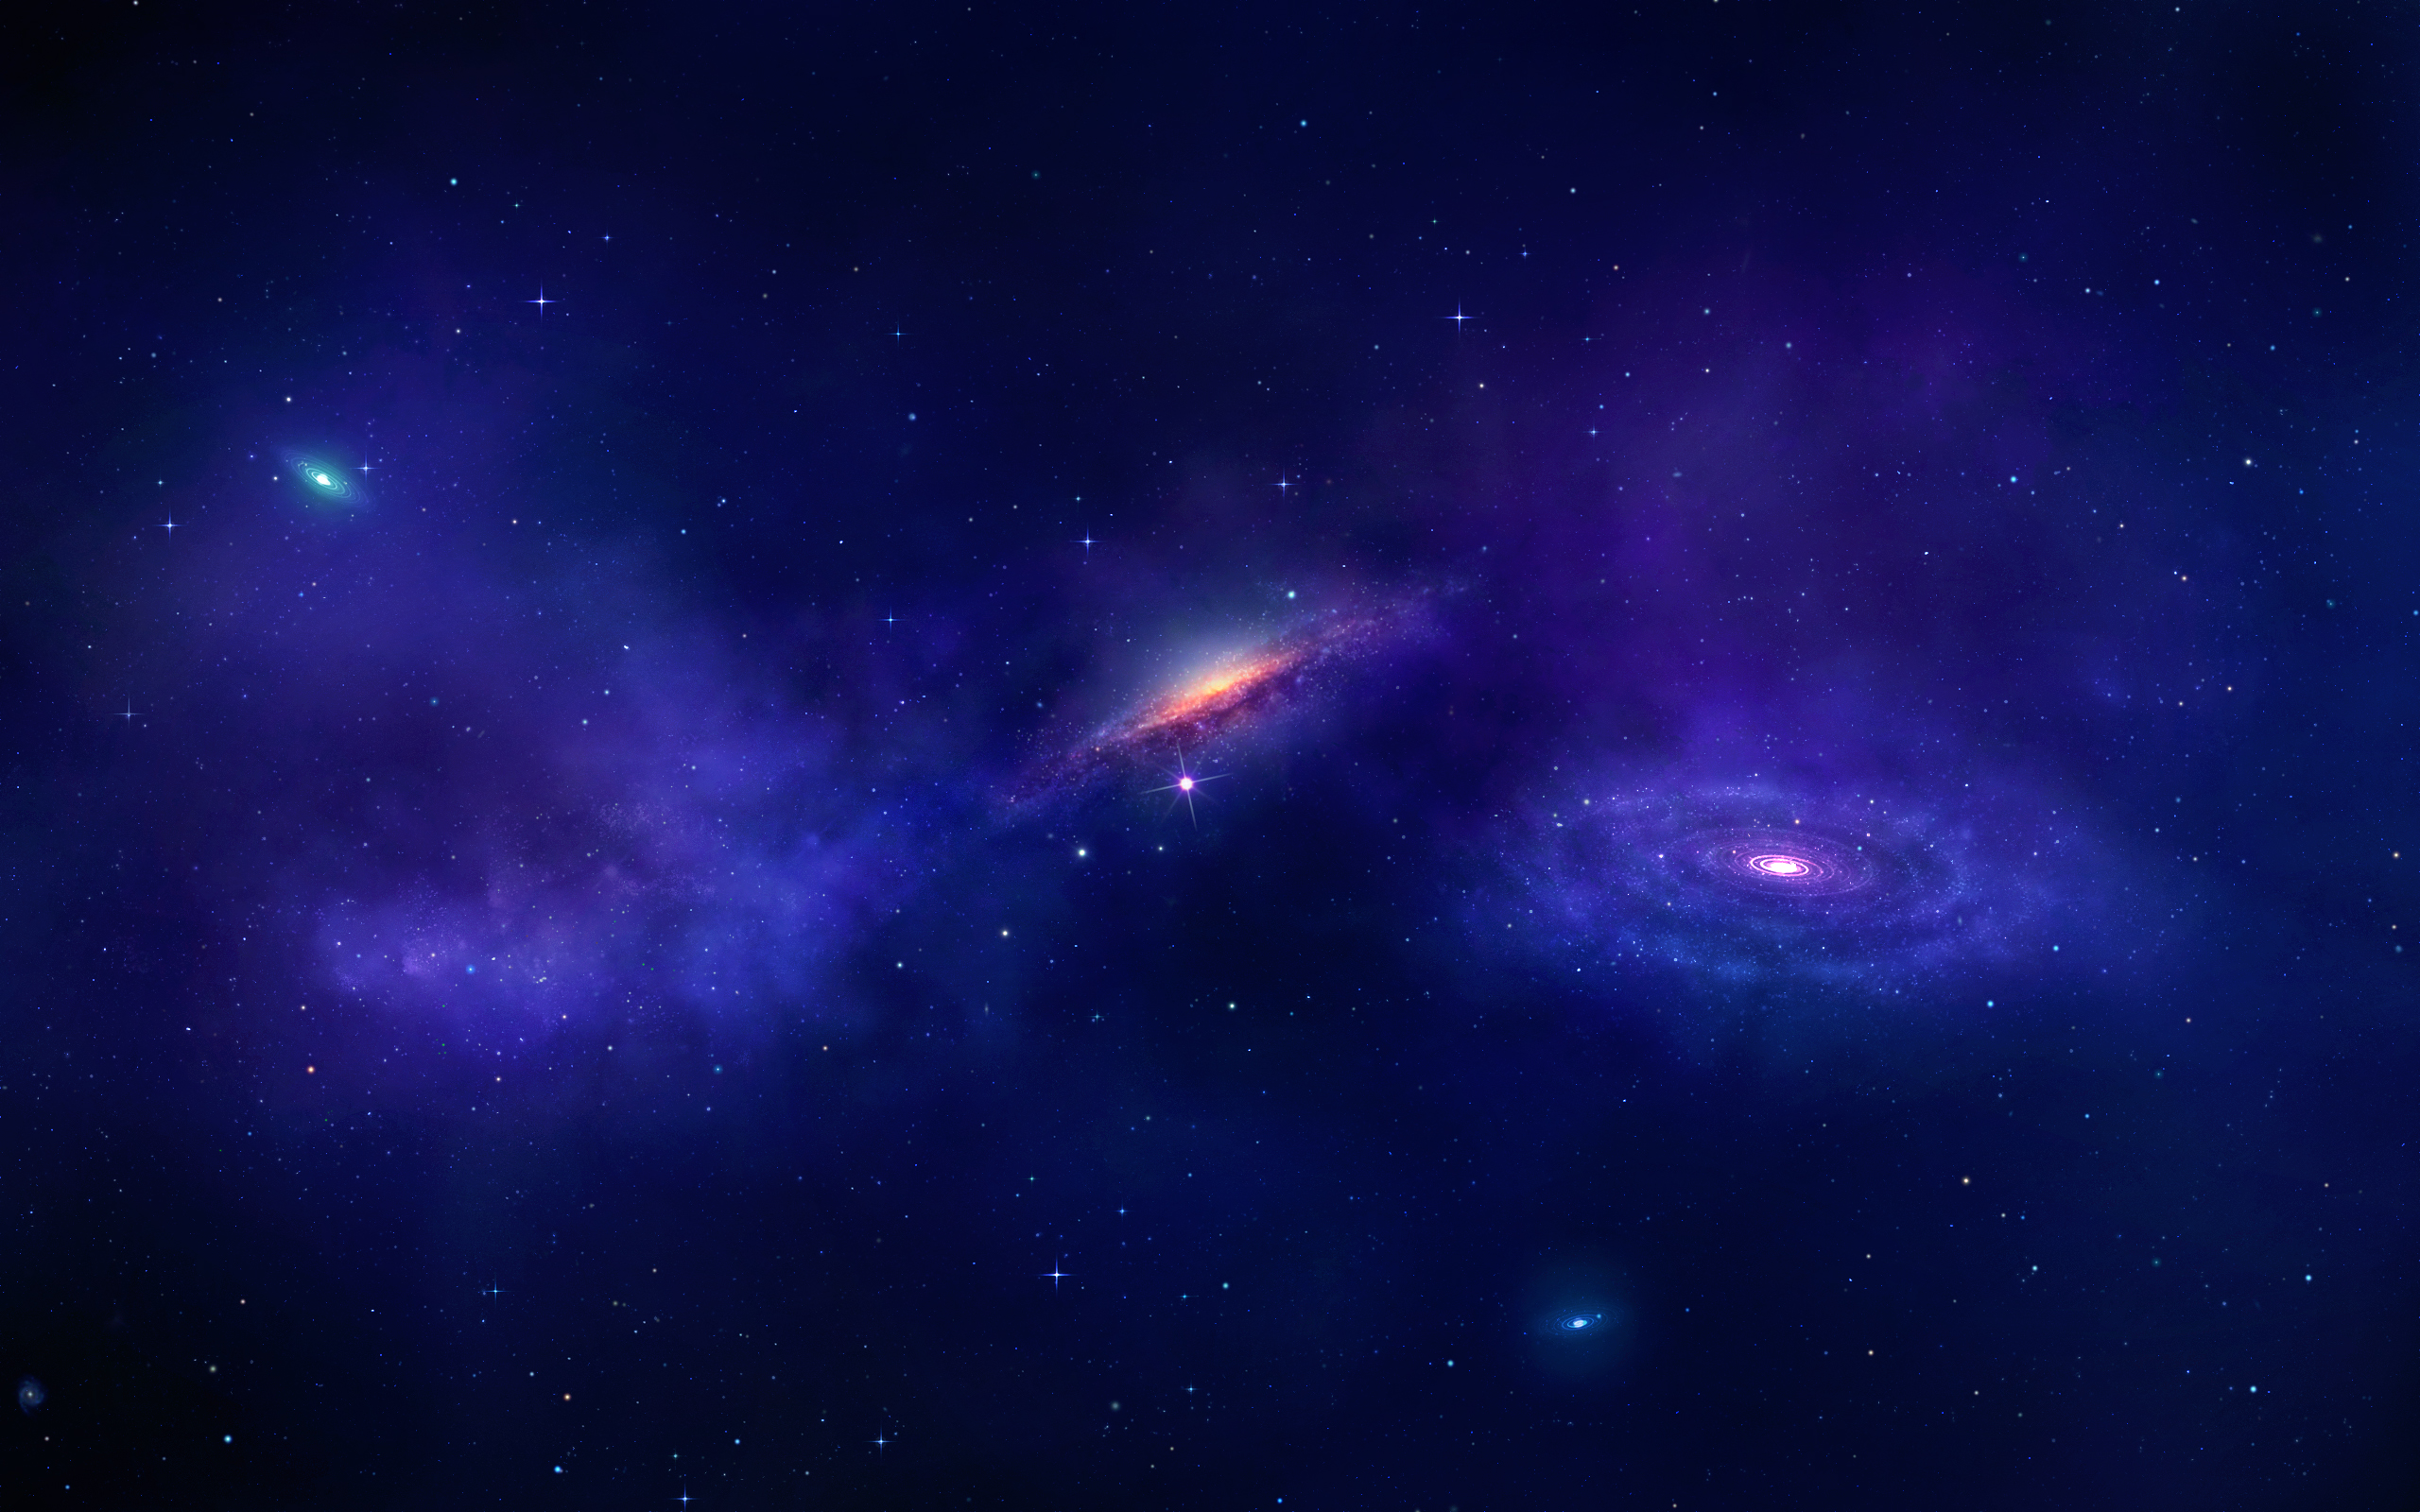 NASA Space Wallpaper 1920X1080 - Pics about space